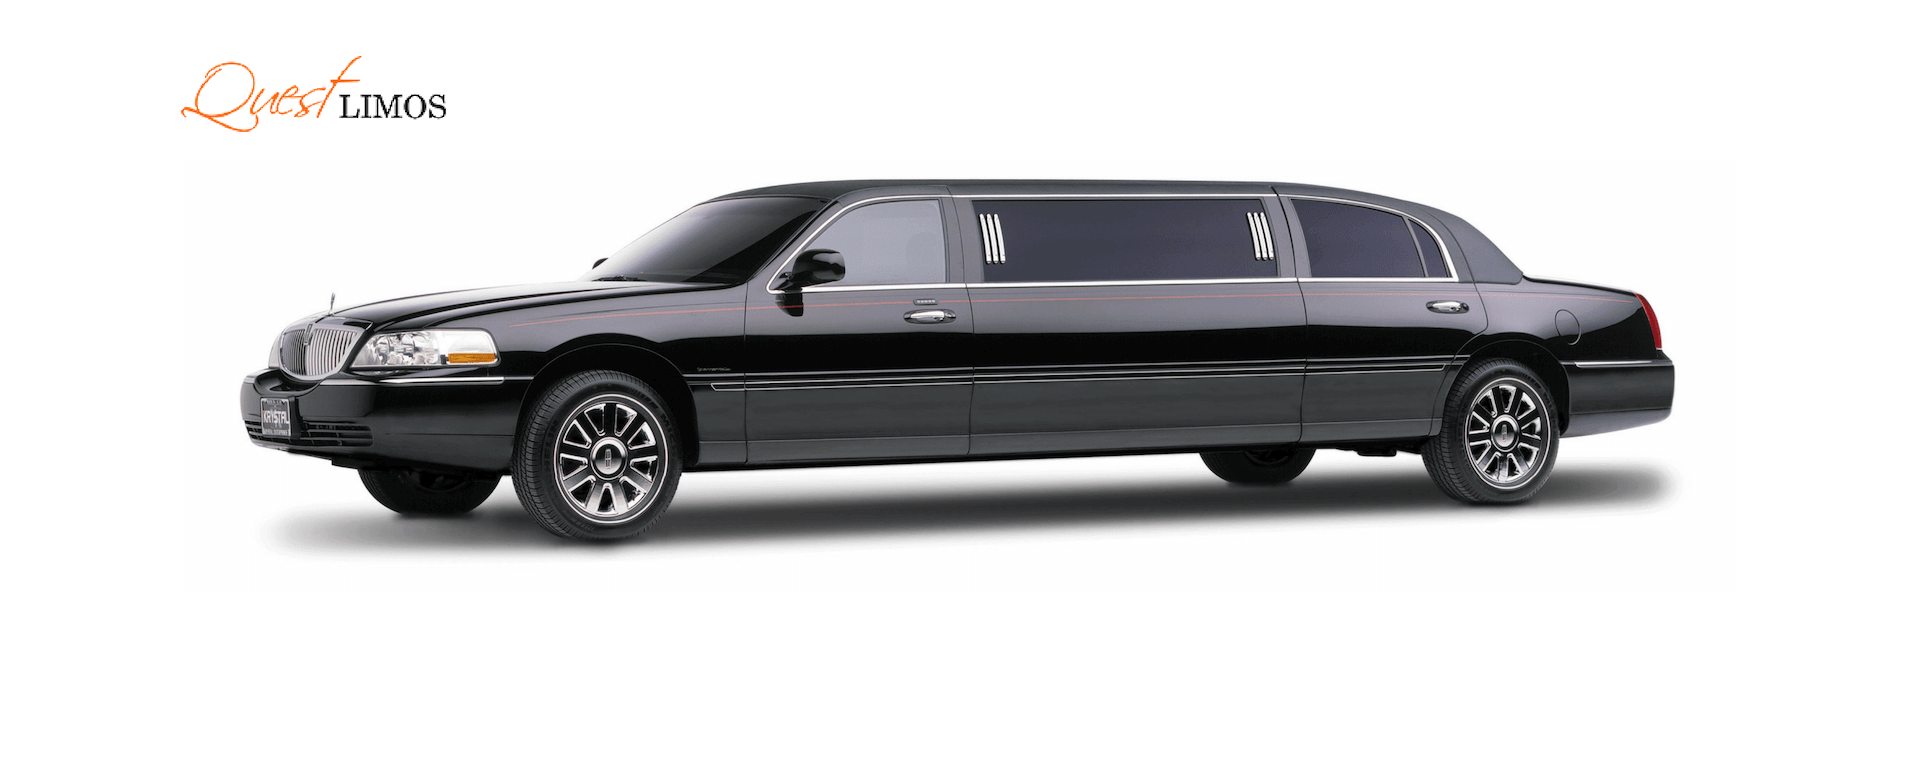 decoarted lincoln limo for wedding